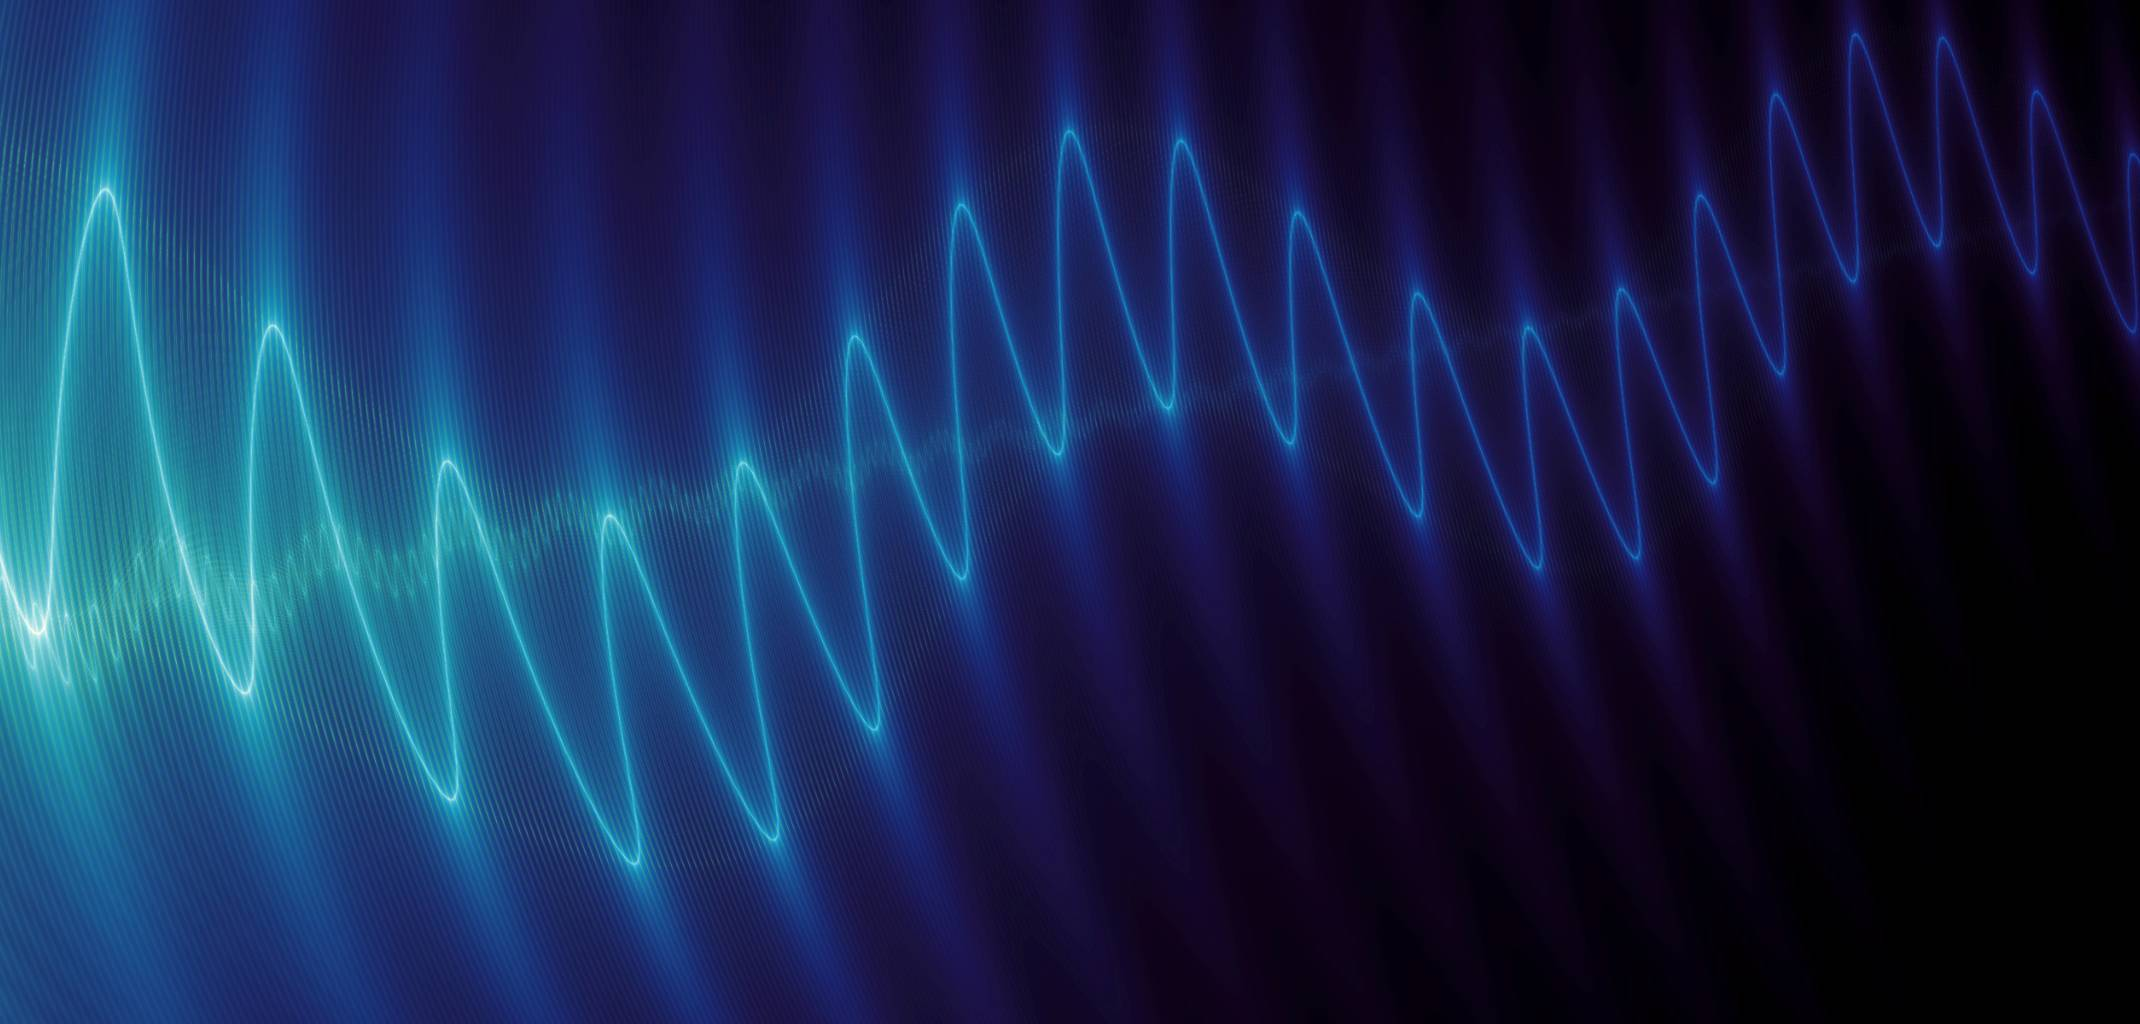 light and sound waves essay Kids learn about the science of physics including motion, force, momentum, subject of an essay crossword, electricity, waves, light, and sound learn the terms and.